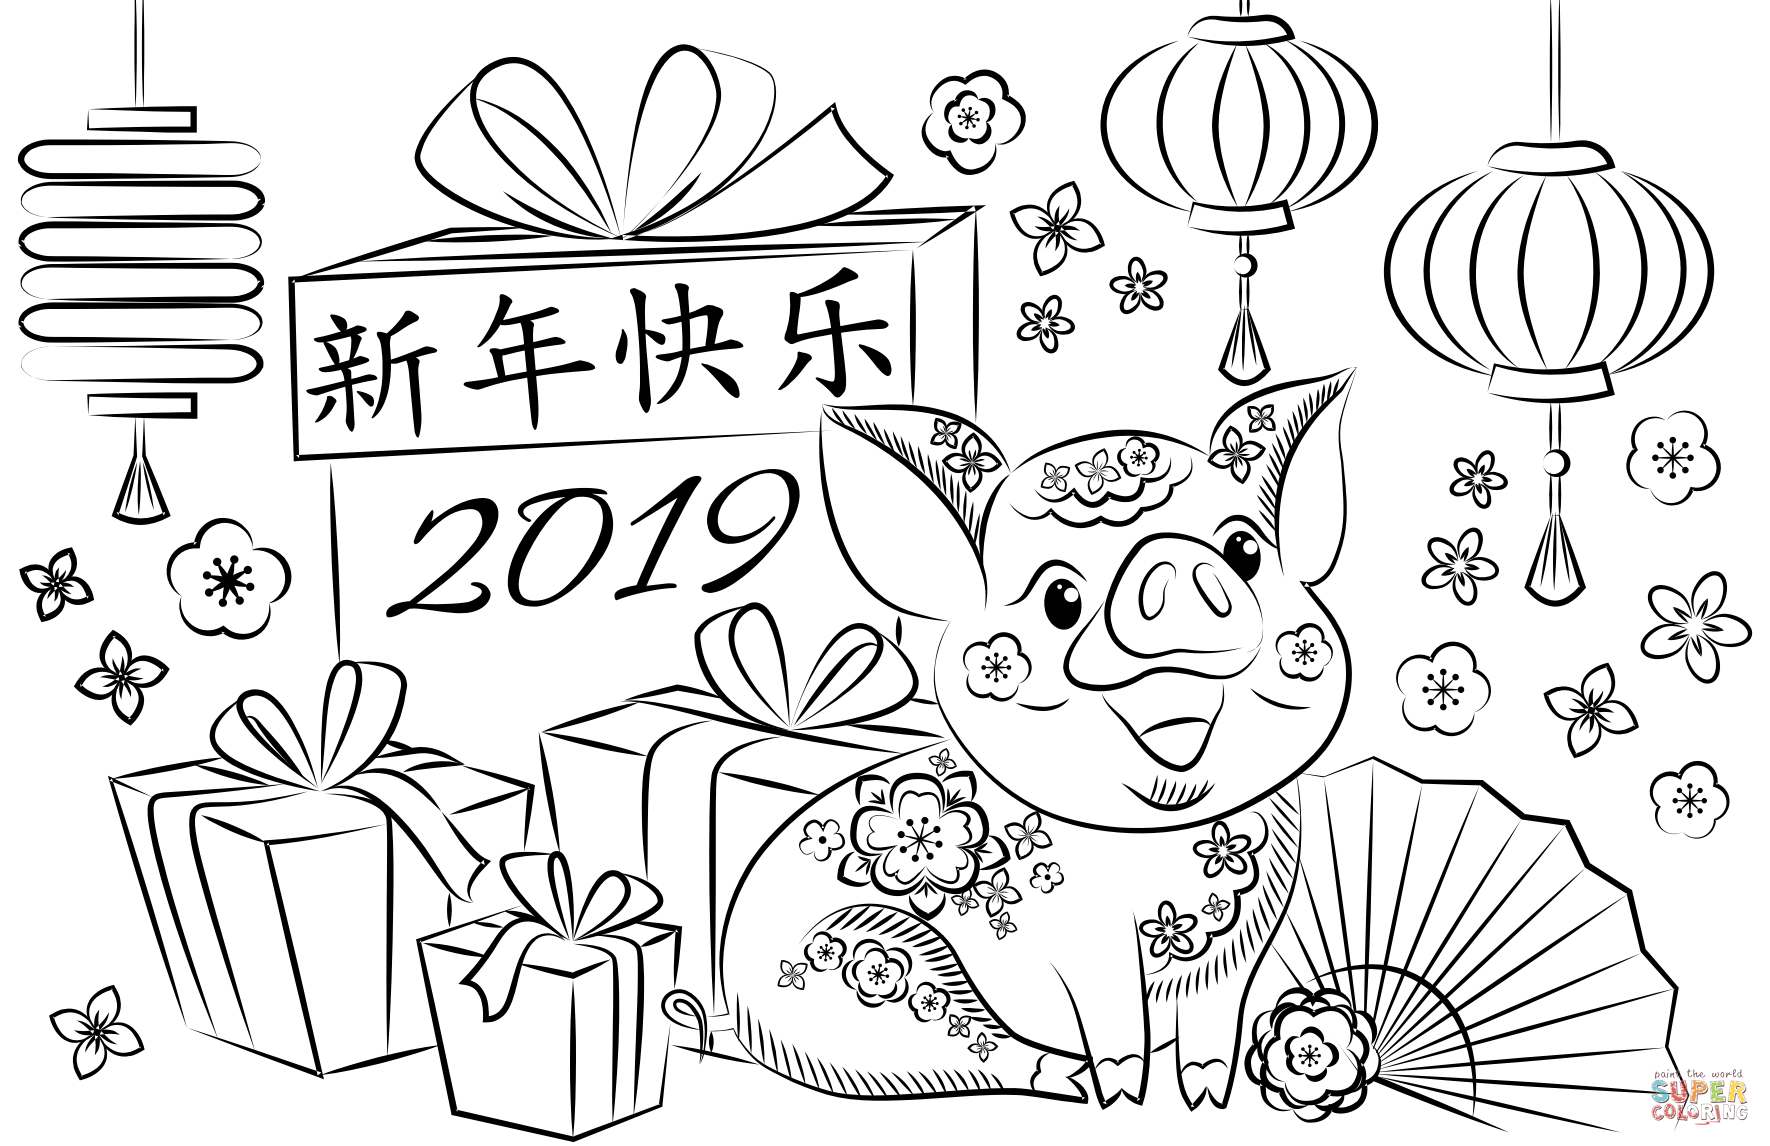 2019 Year Of The Pig Coloring Page | Free Printable Coloring Pages - Pig Coloring Sheets Free Printable